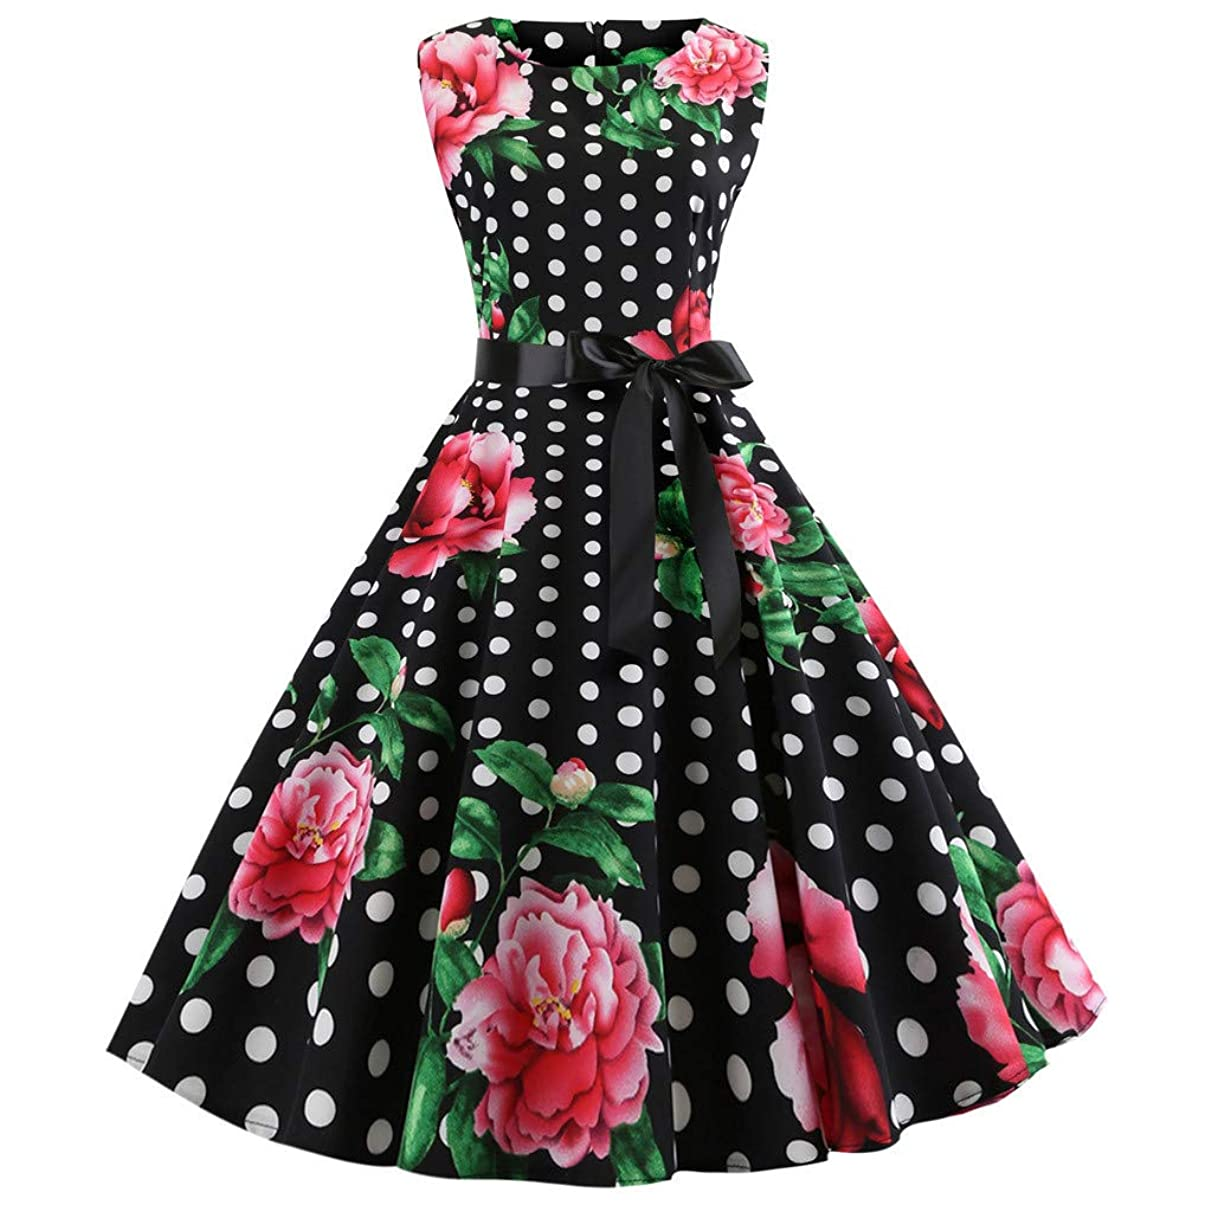 Clearance! Vintage Sleeveless Dress,Oliviavan Women's Floral Print Casual Evening Party Prom Swing Dress